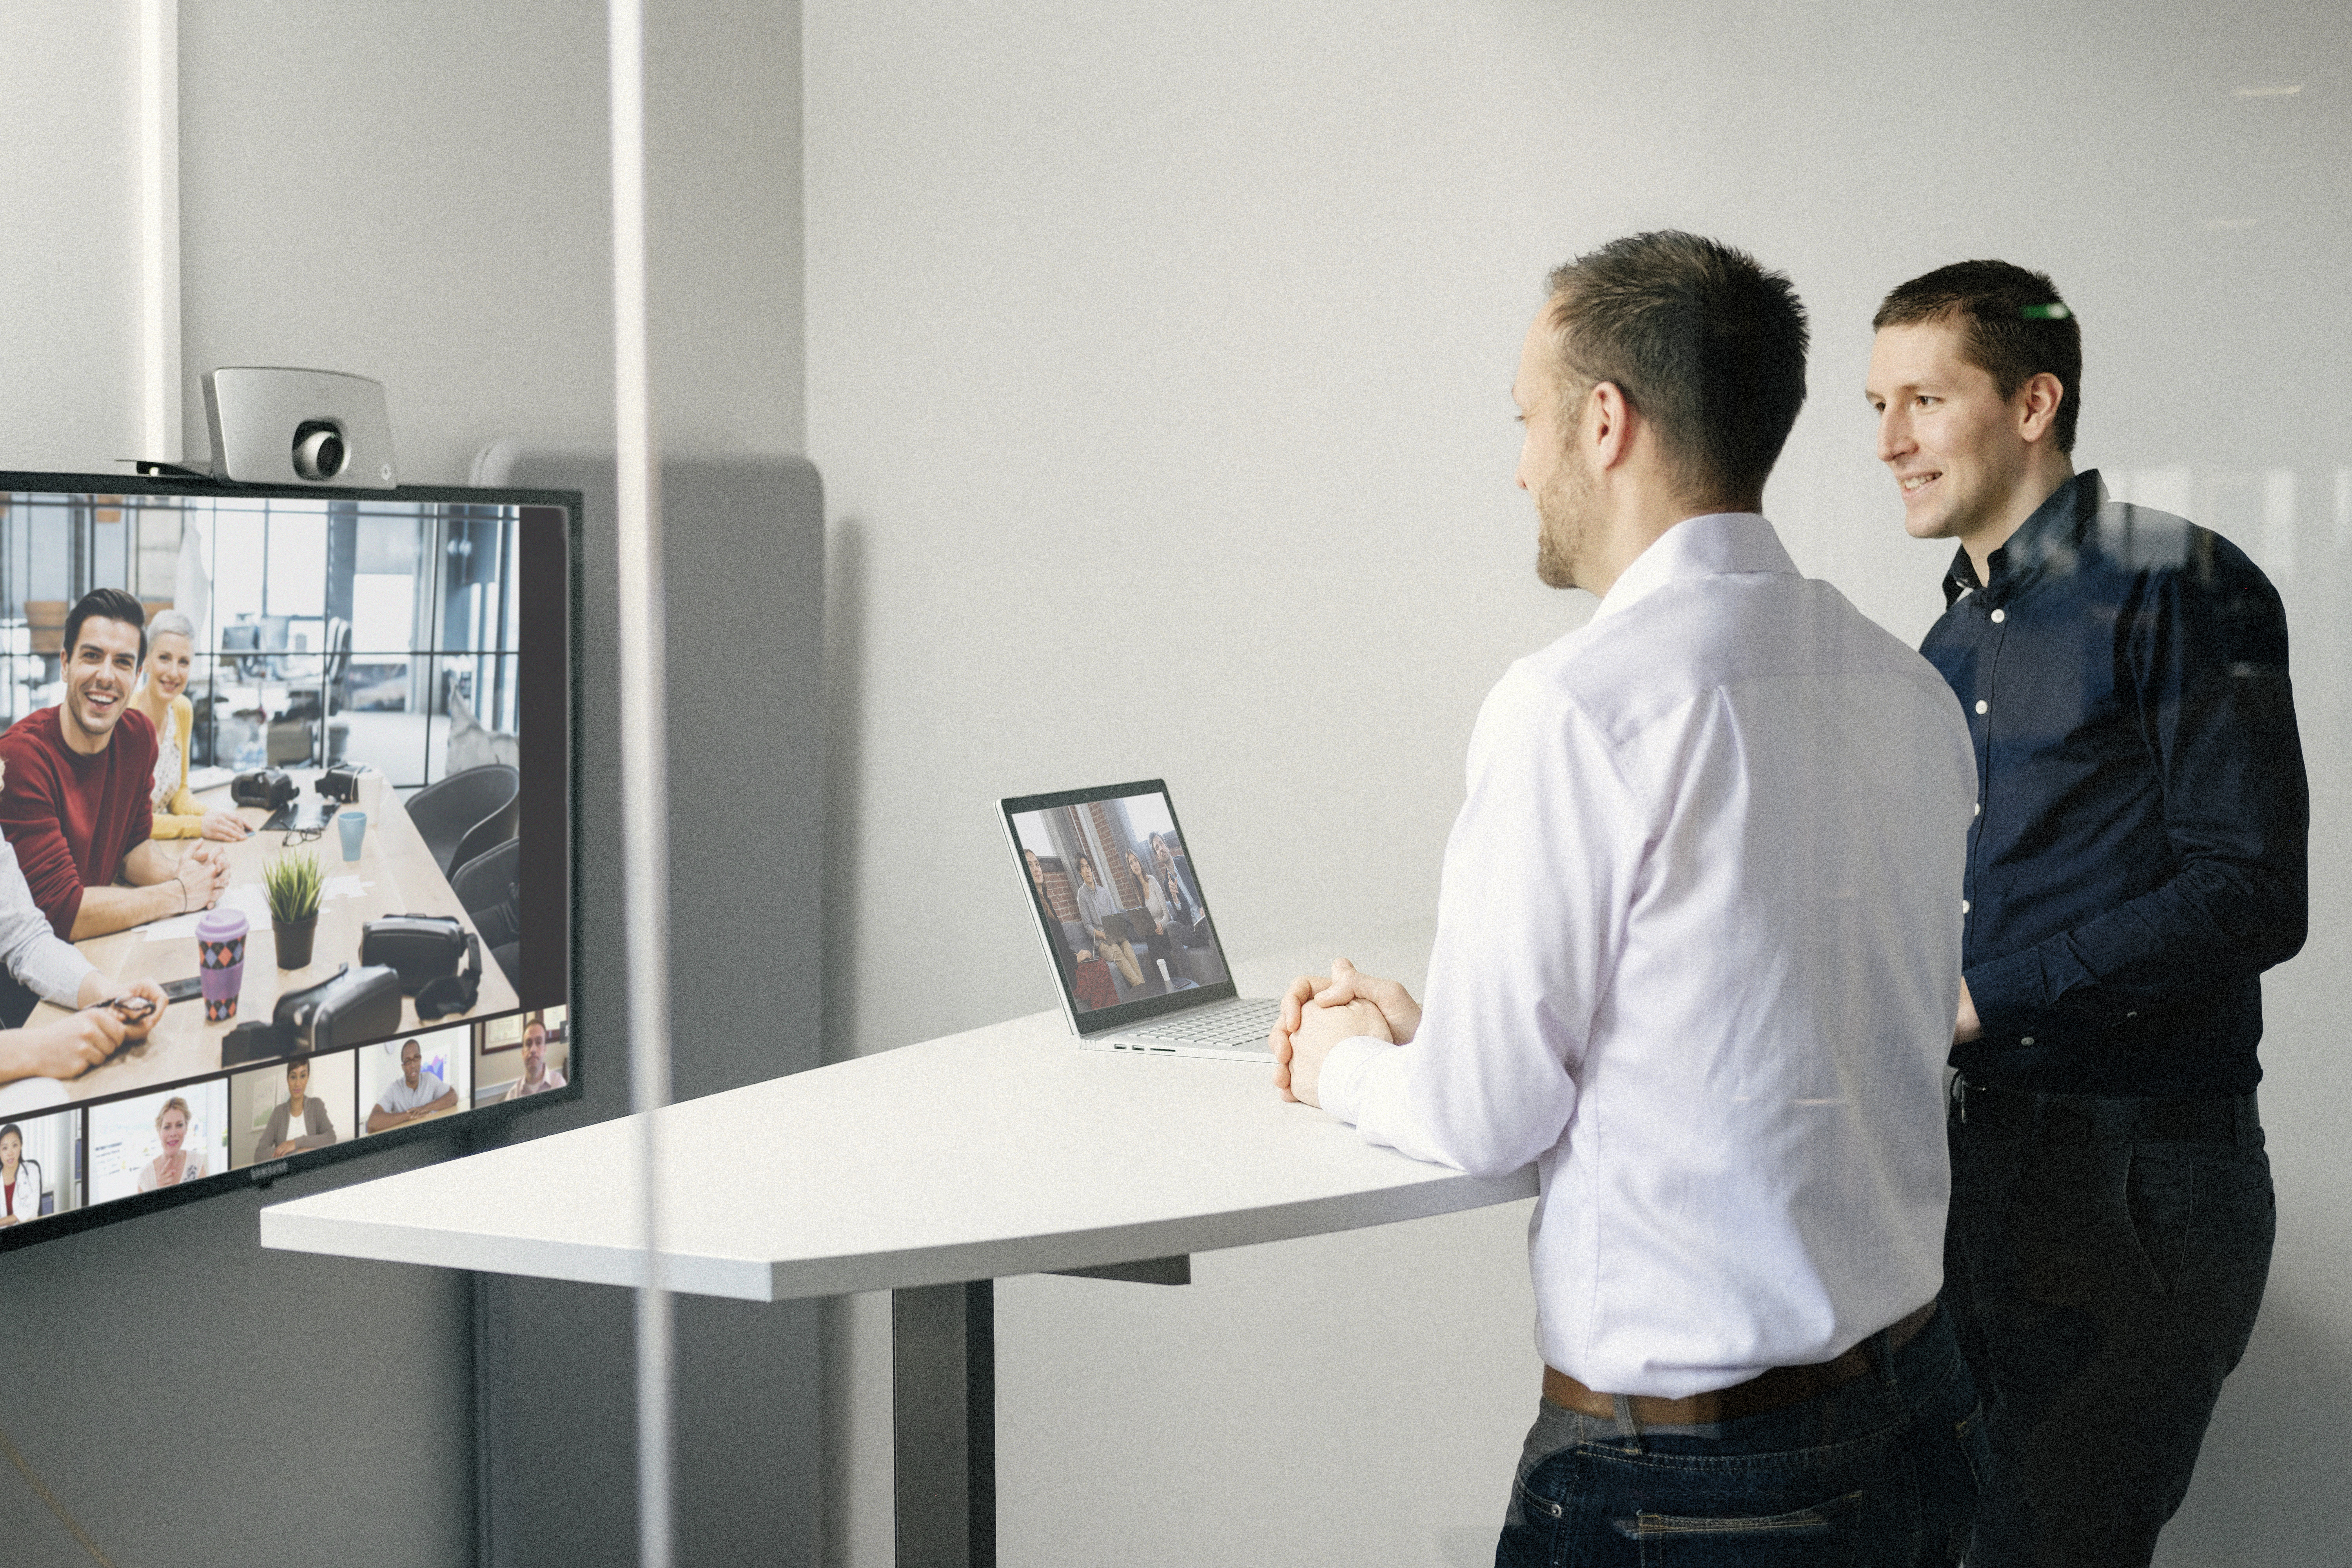 video and meet at the same time